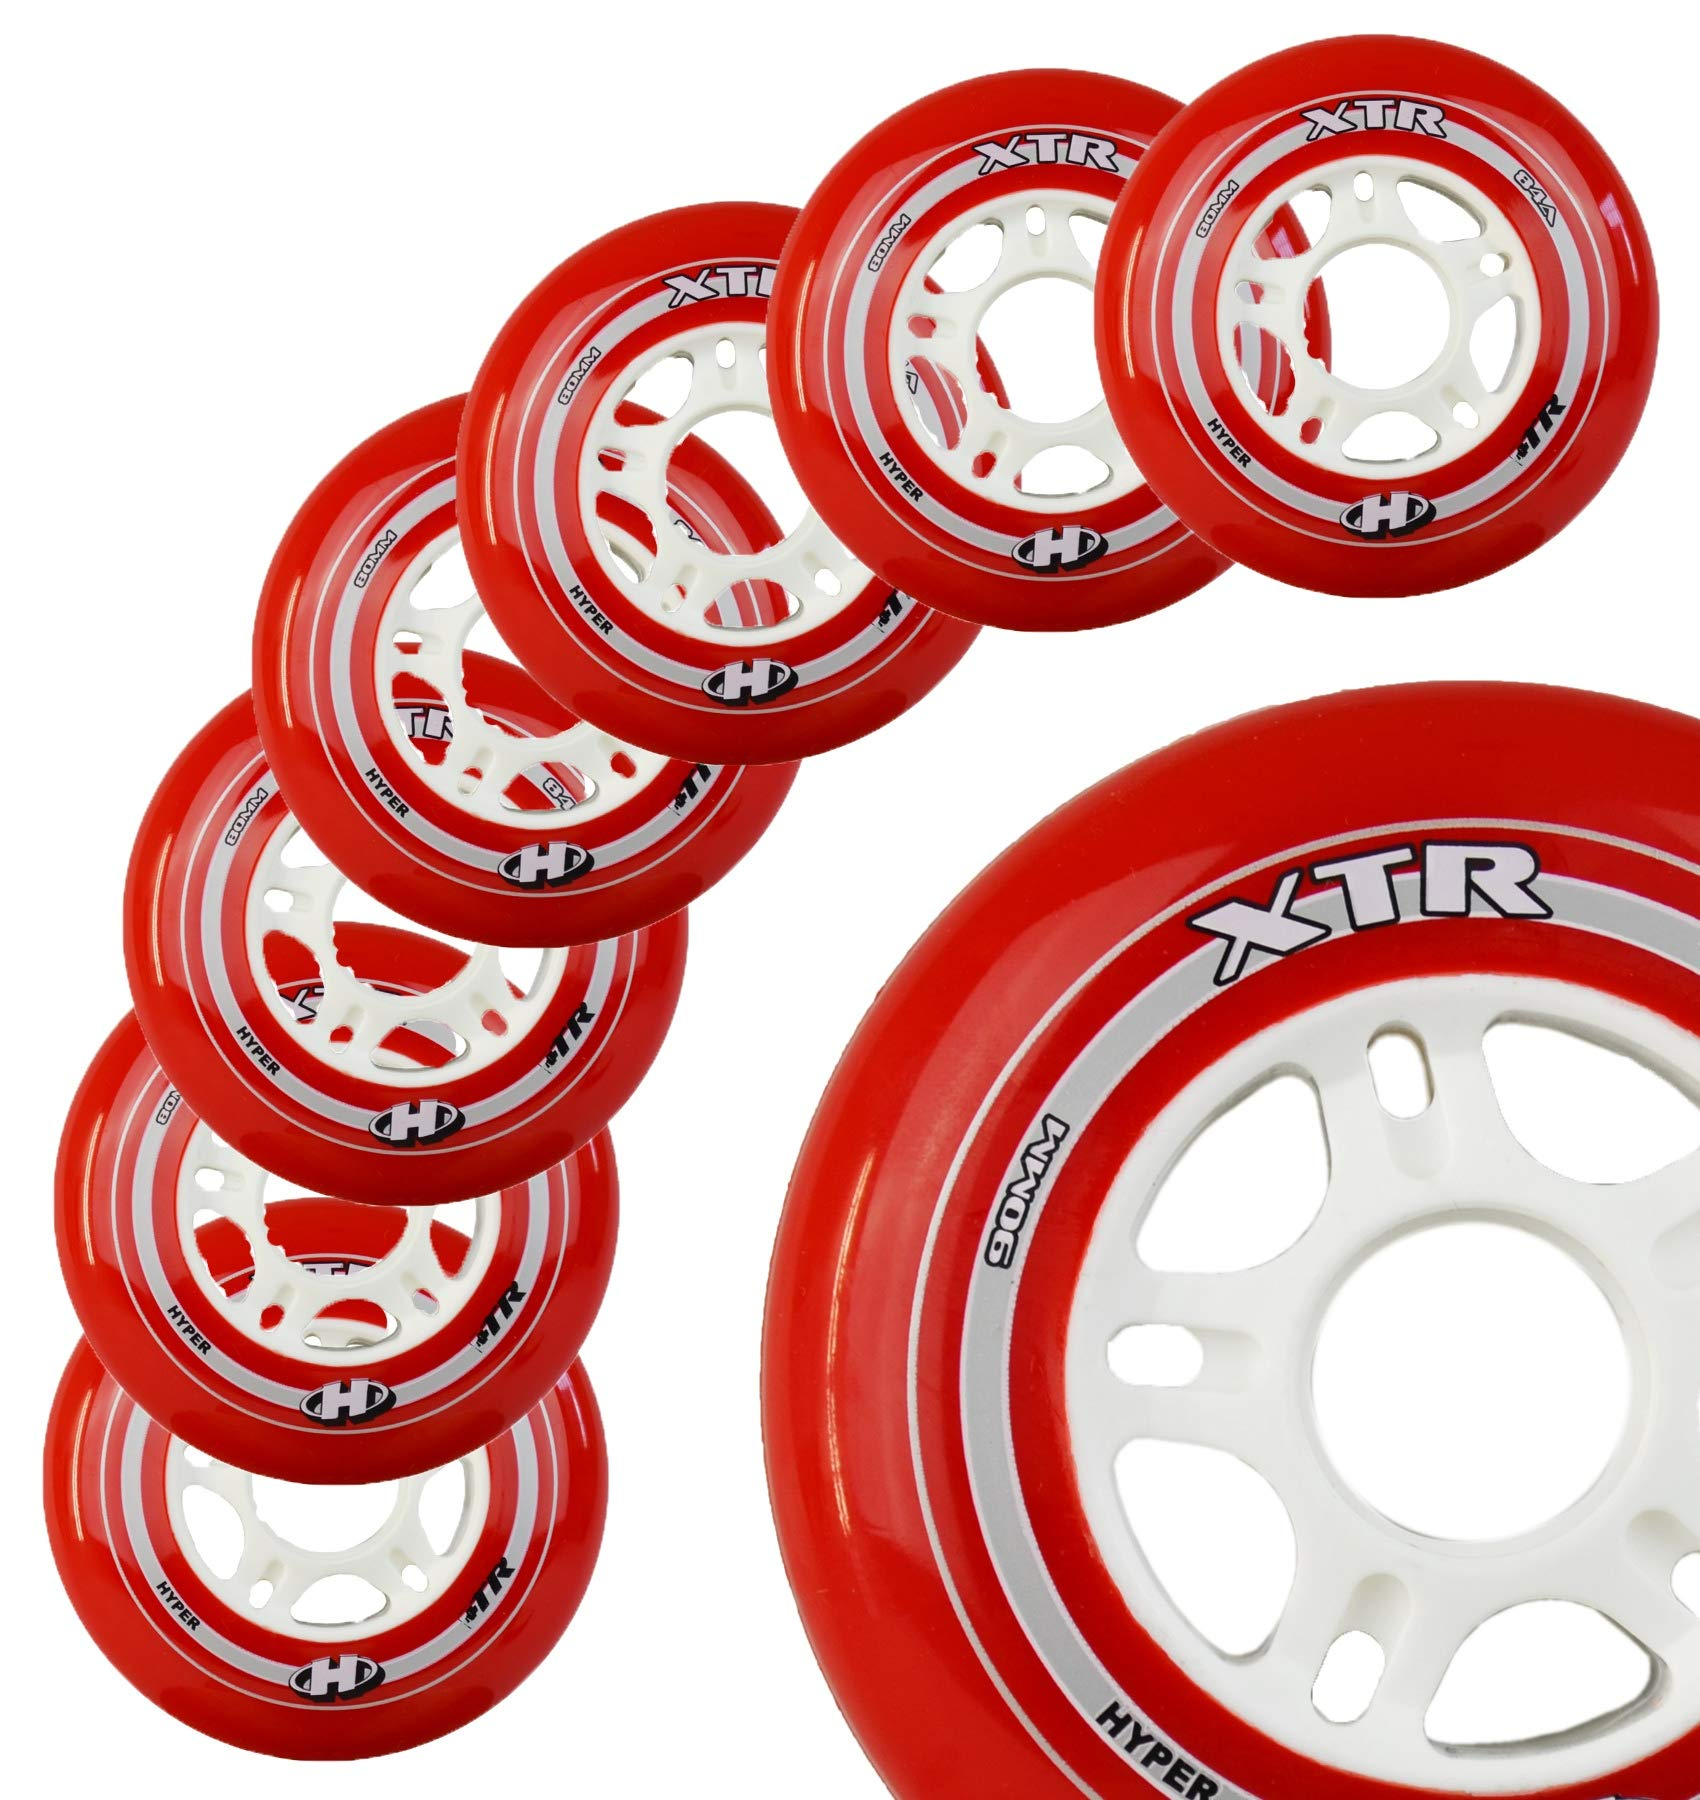 Inline Skate Wheels Hyper XTR - 8 Wheels - 84A - Sizes: 84MM - Speed Skating, Fitness and Recreational Wheels (RED, 84MM)